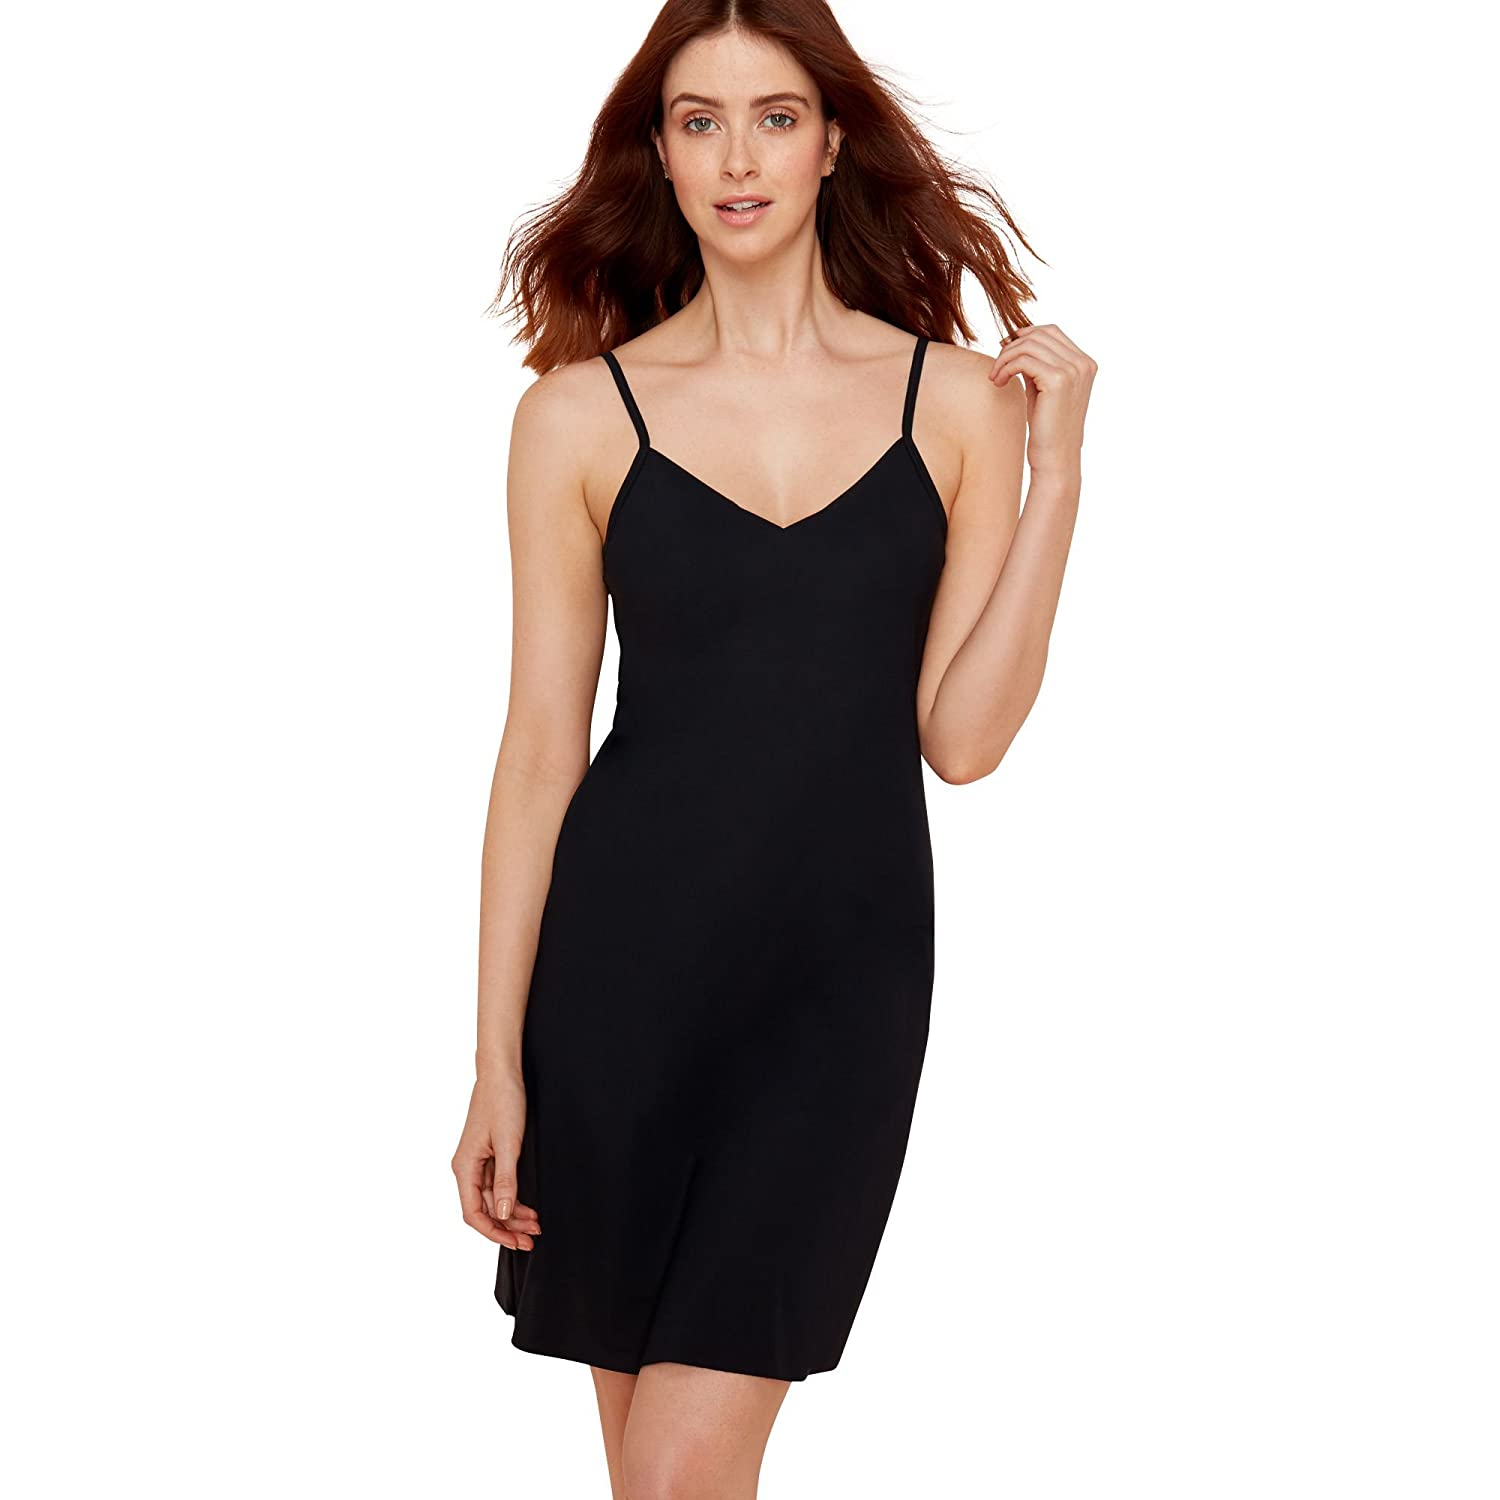 Debenhams Womens Black Cooling Microfibre Slip